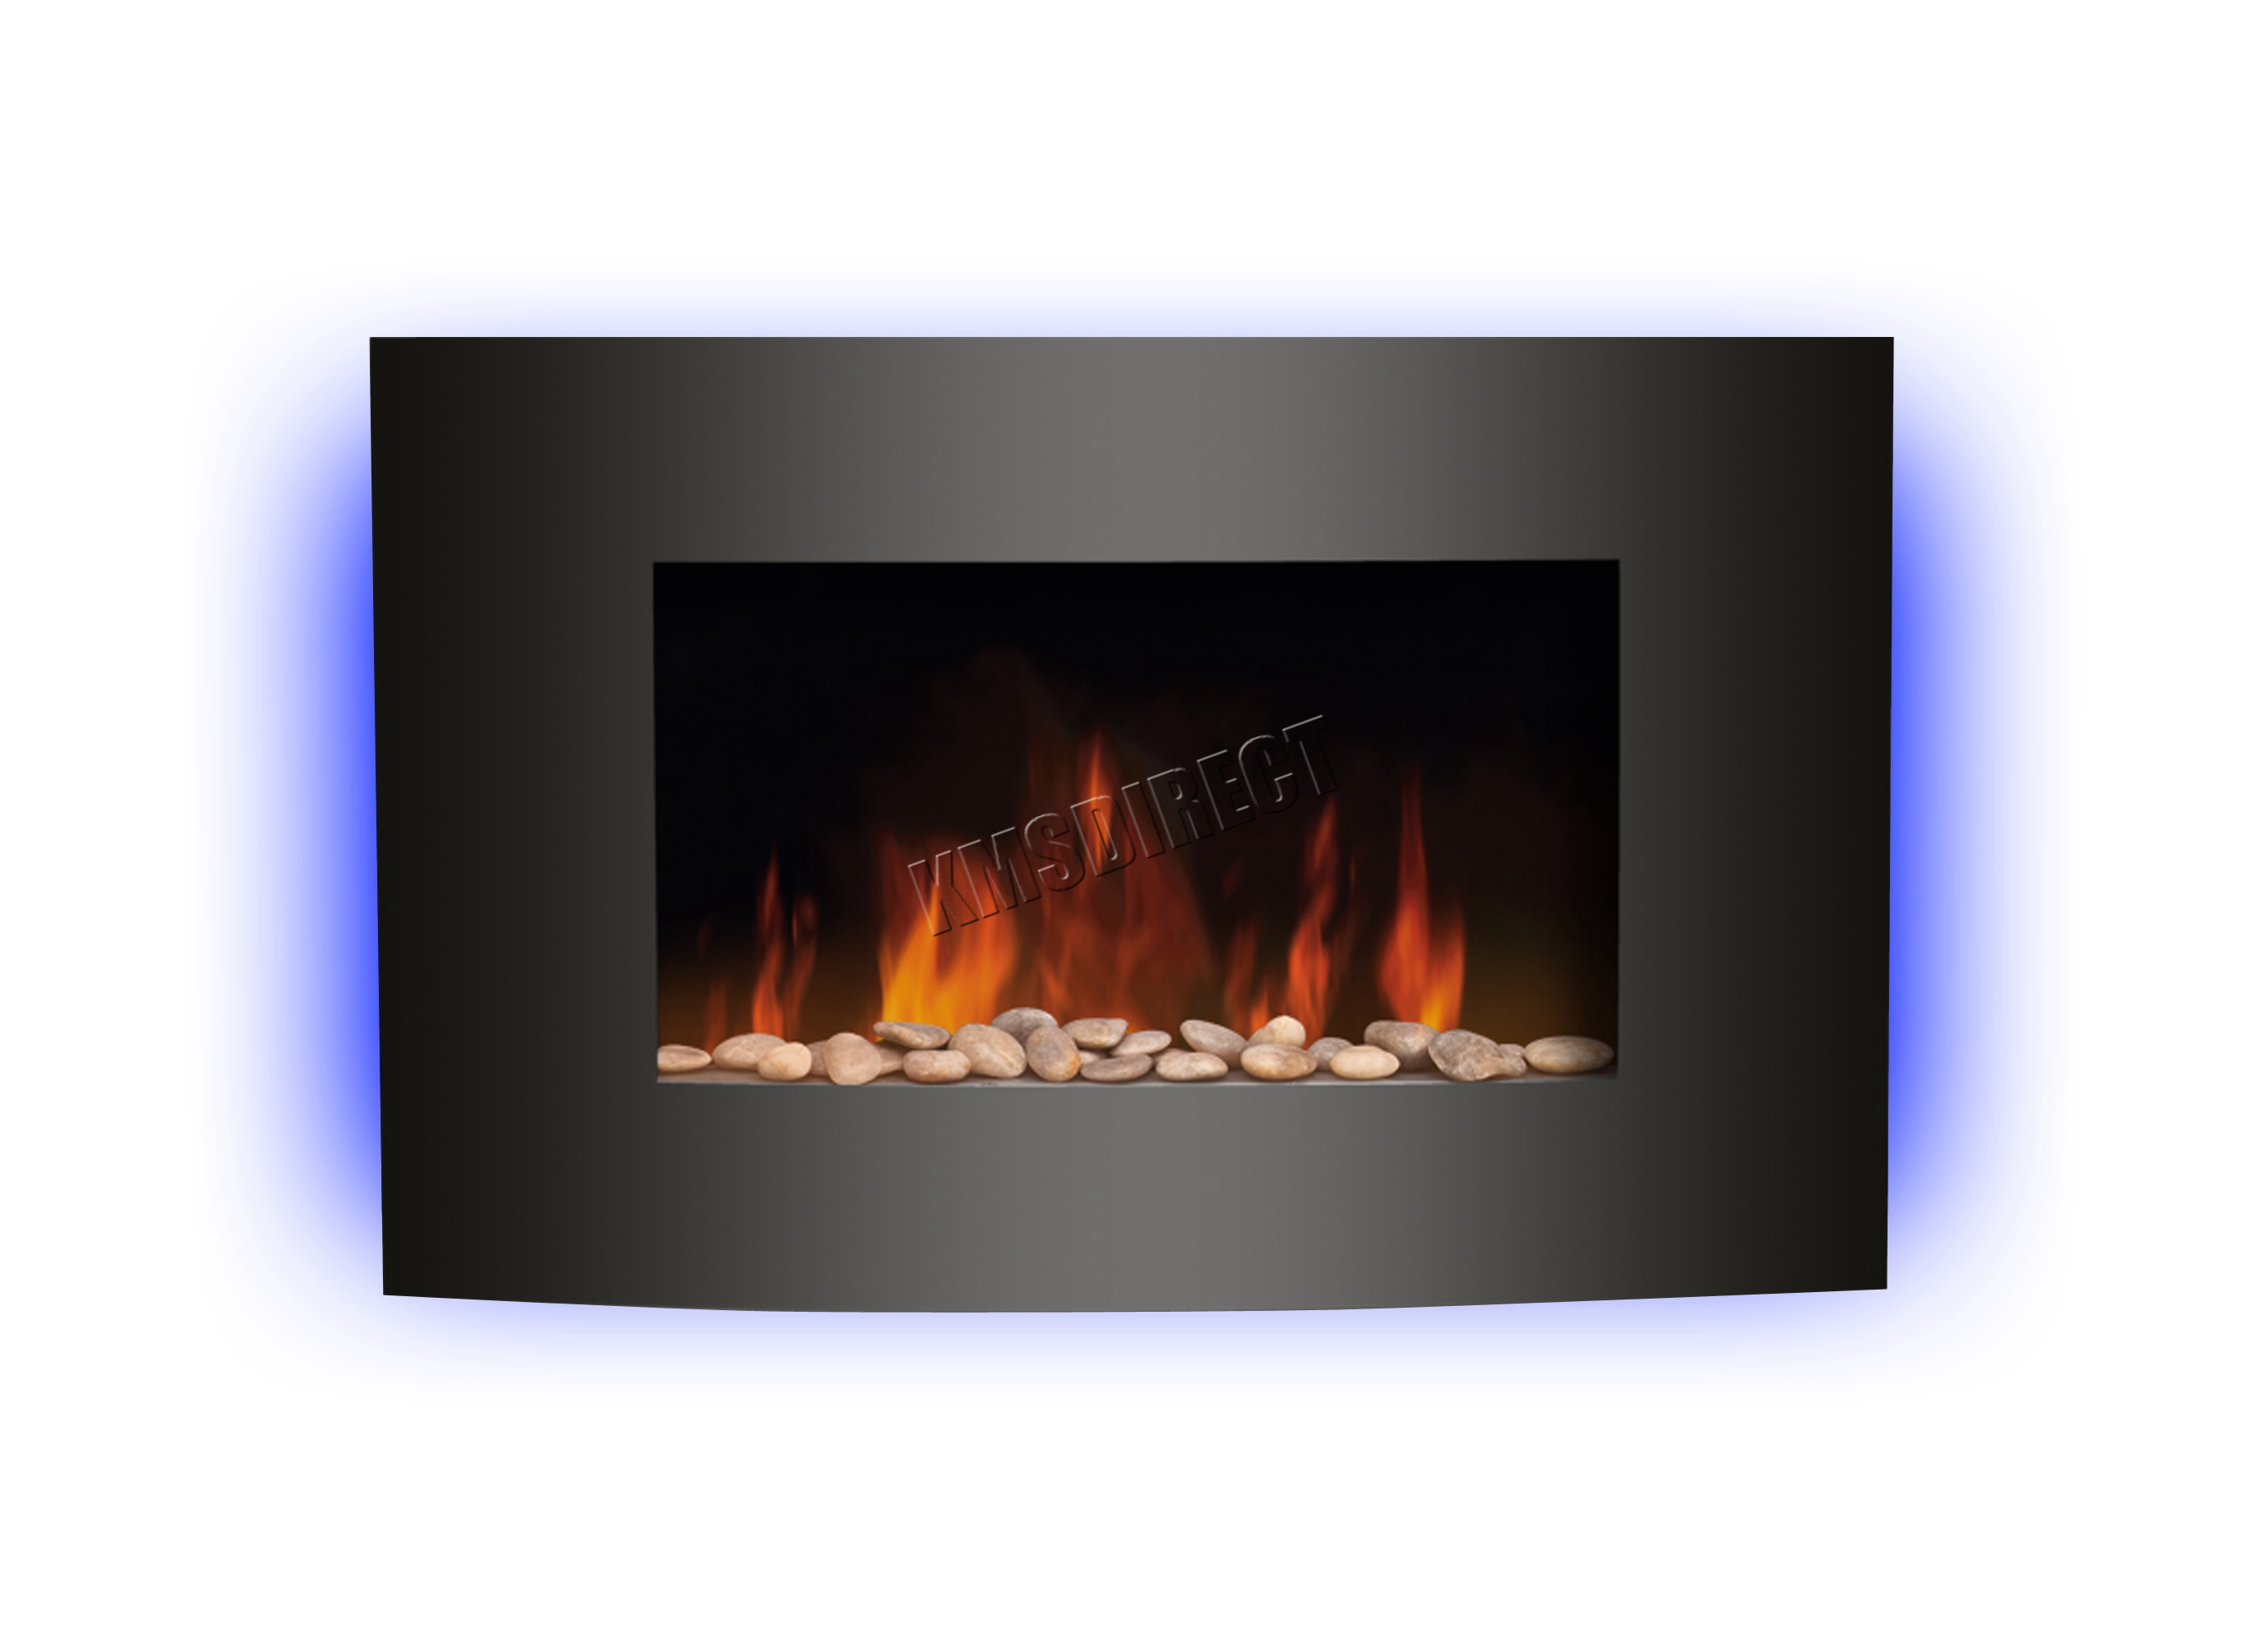 Wall Mounted Electric Fireplace Gl Heater Fire Remote